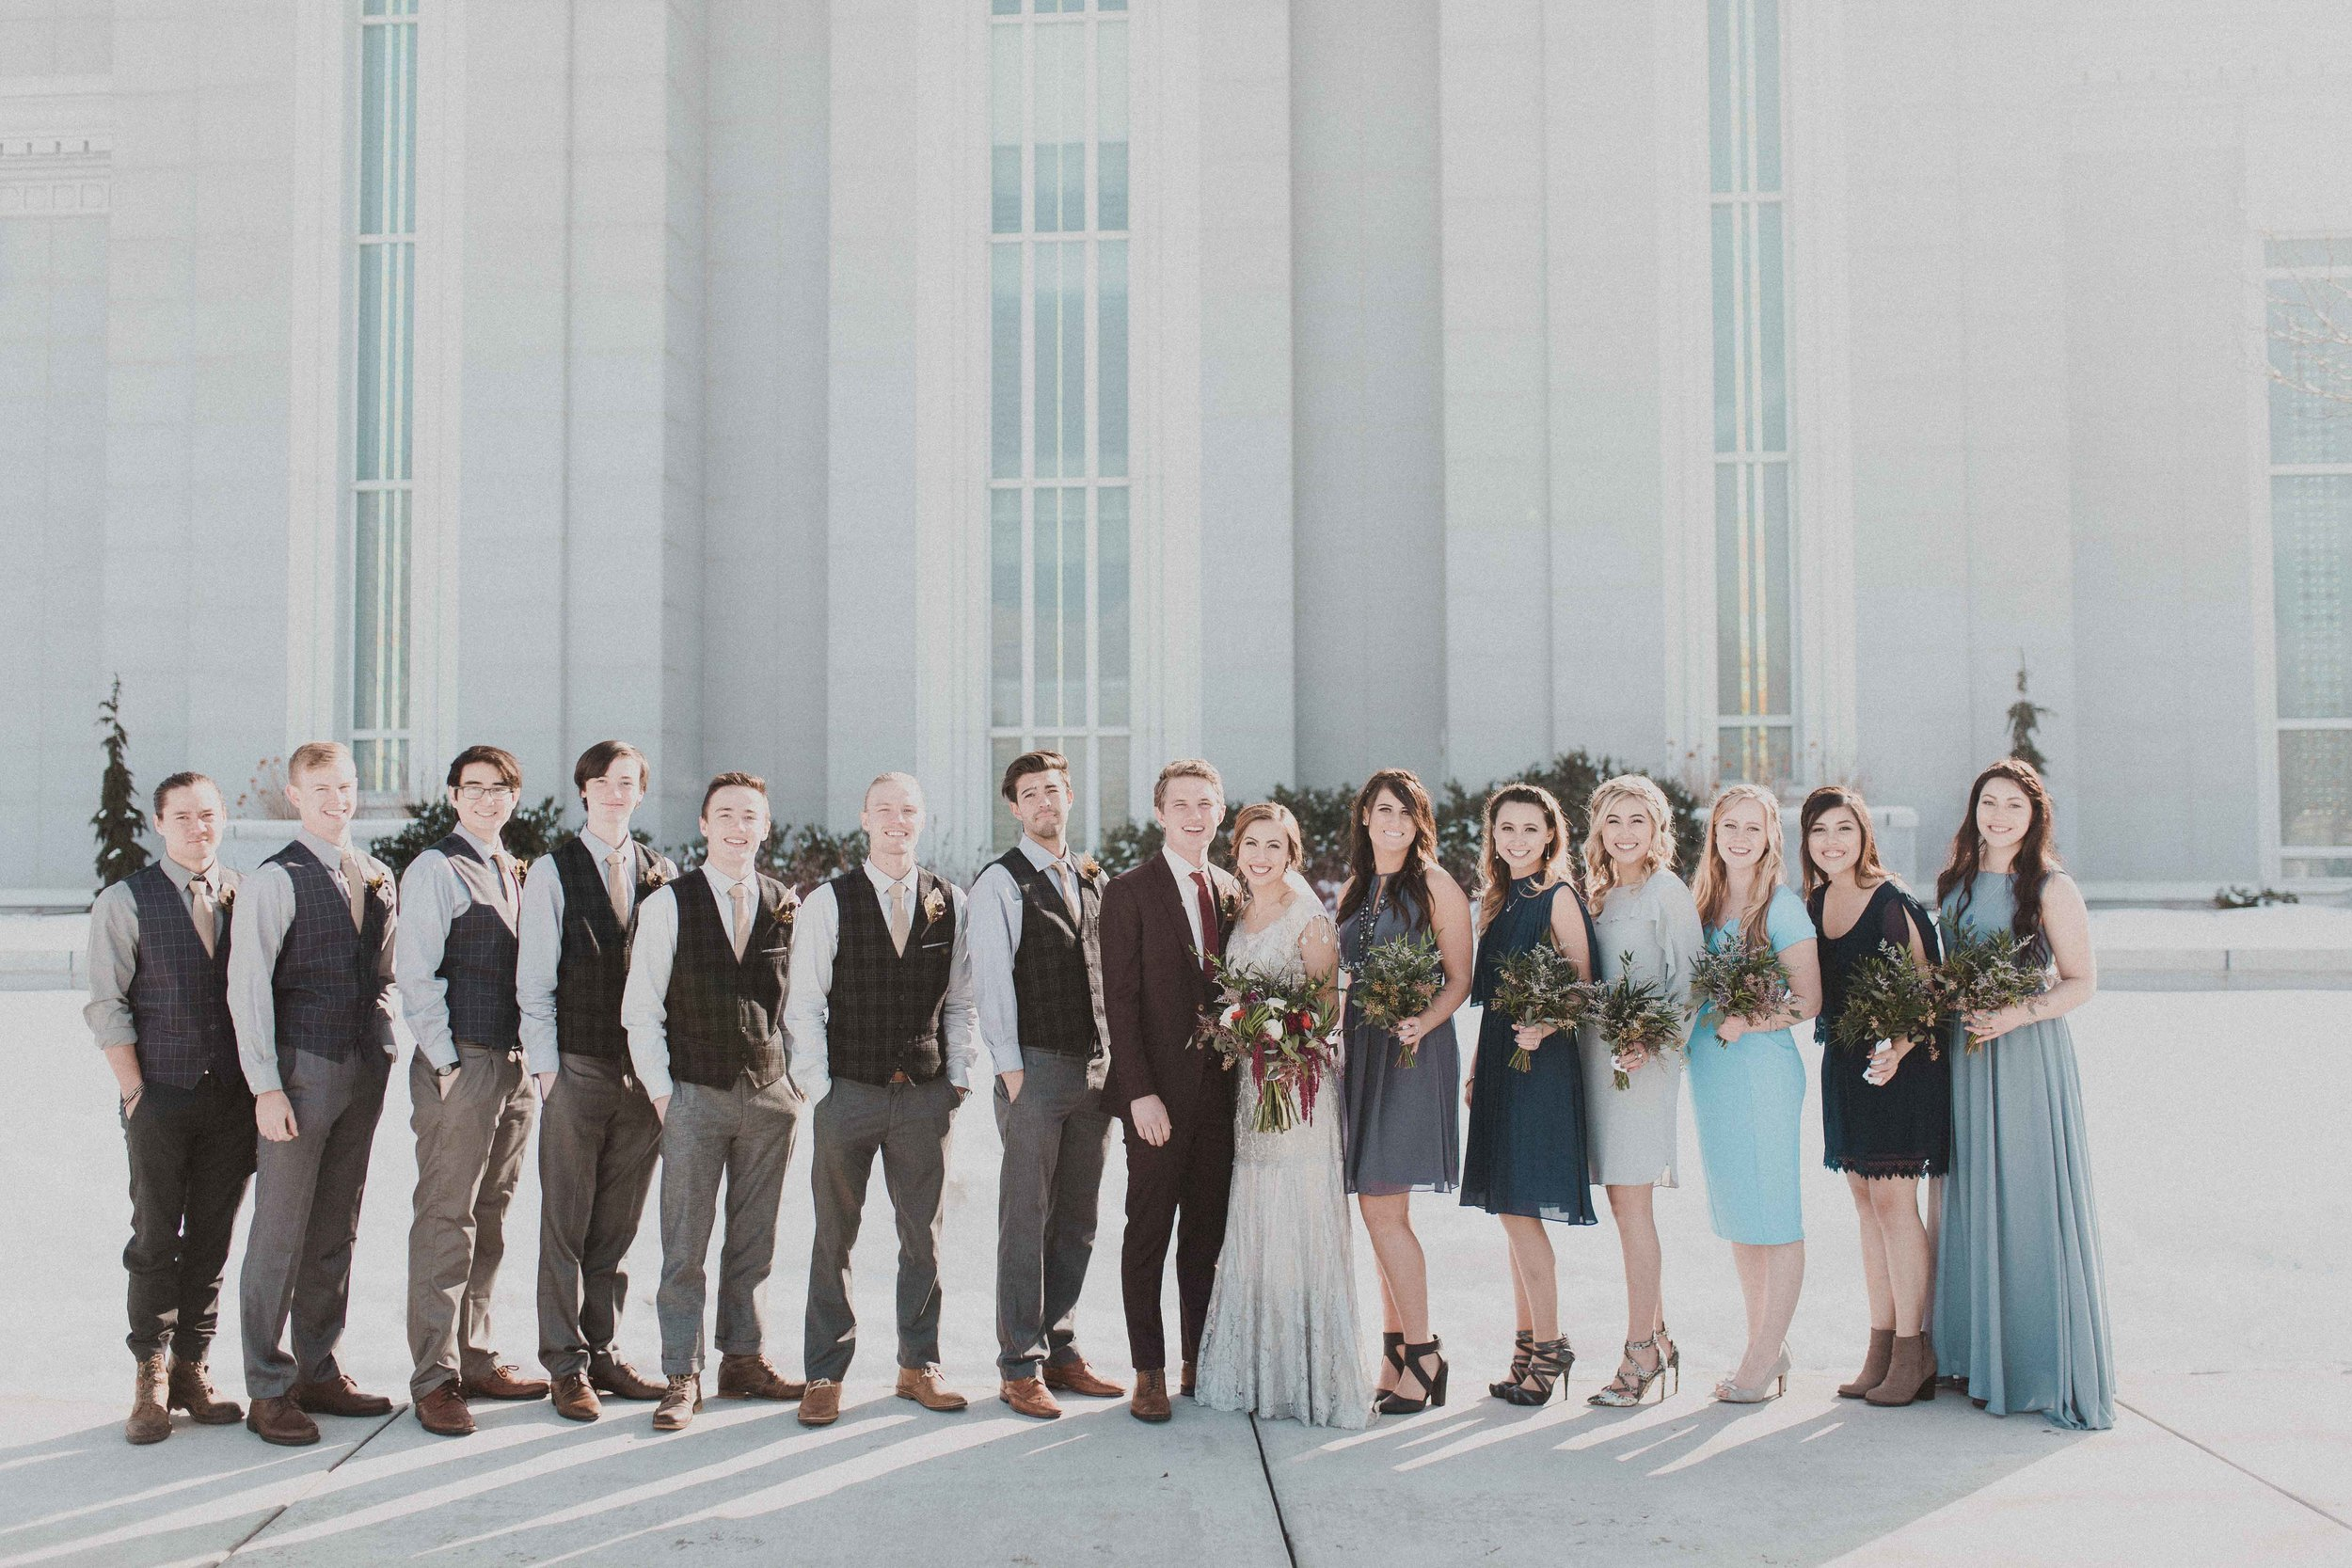 Salt-Lake-City-Wedding-Photographerss-1.jpg